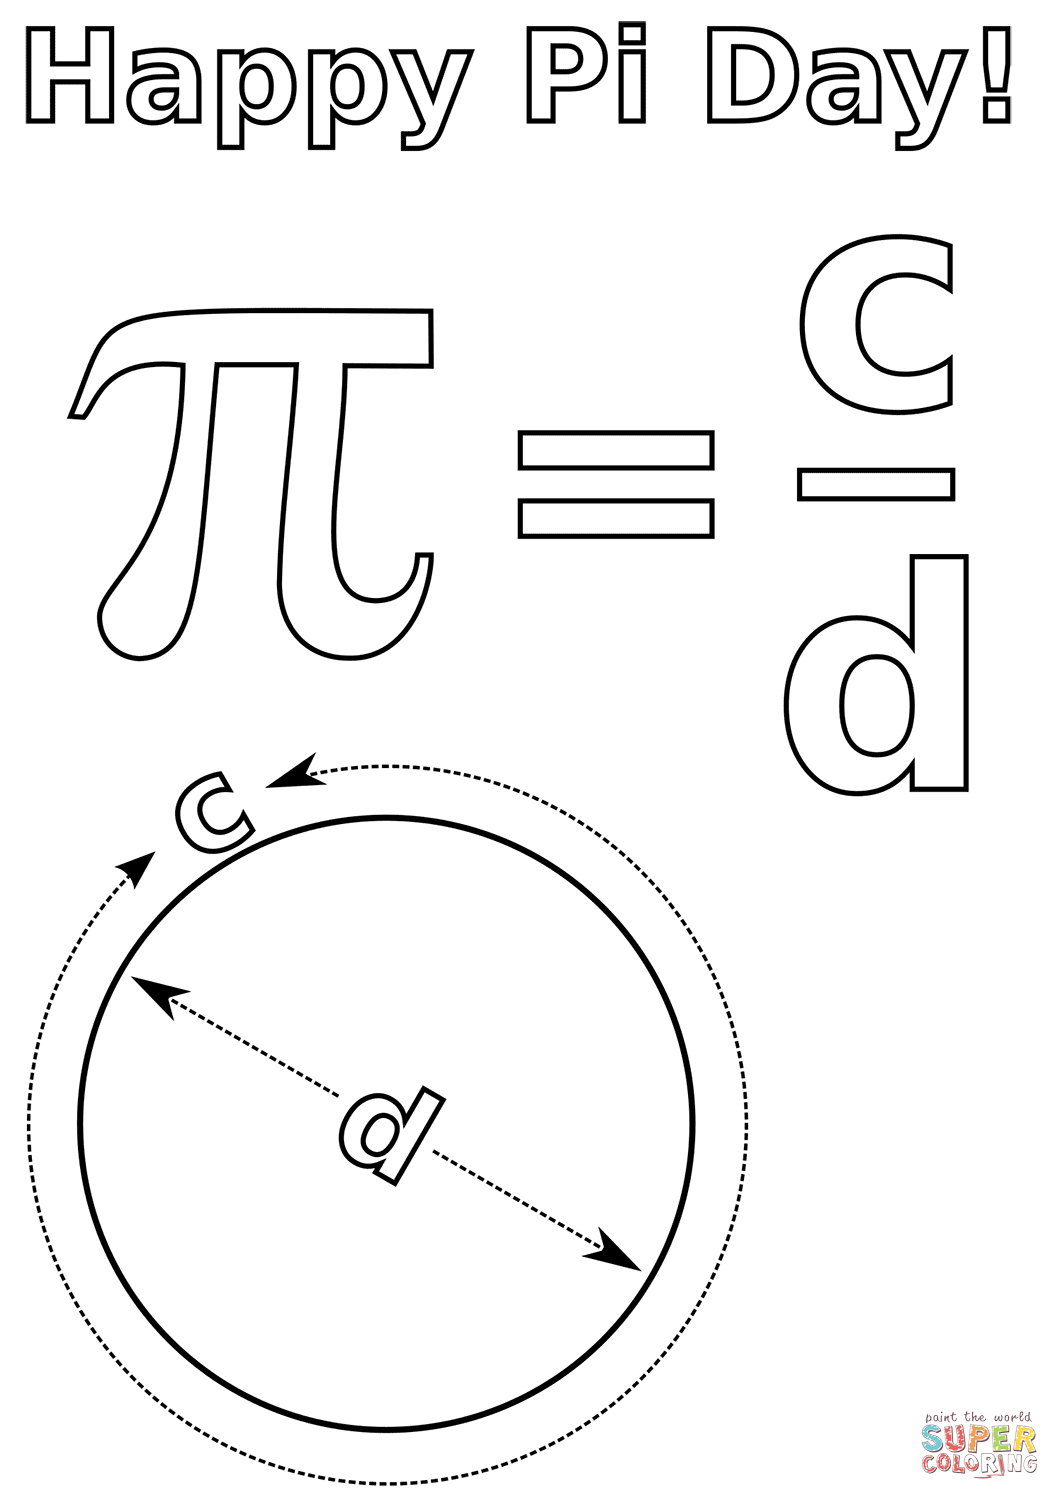 Happy Pi Day Coloring Page